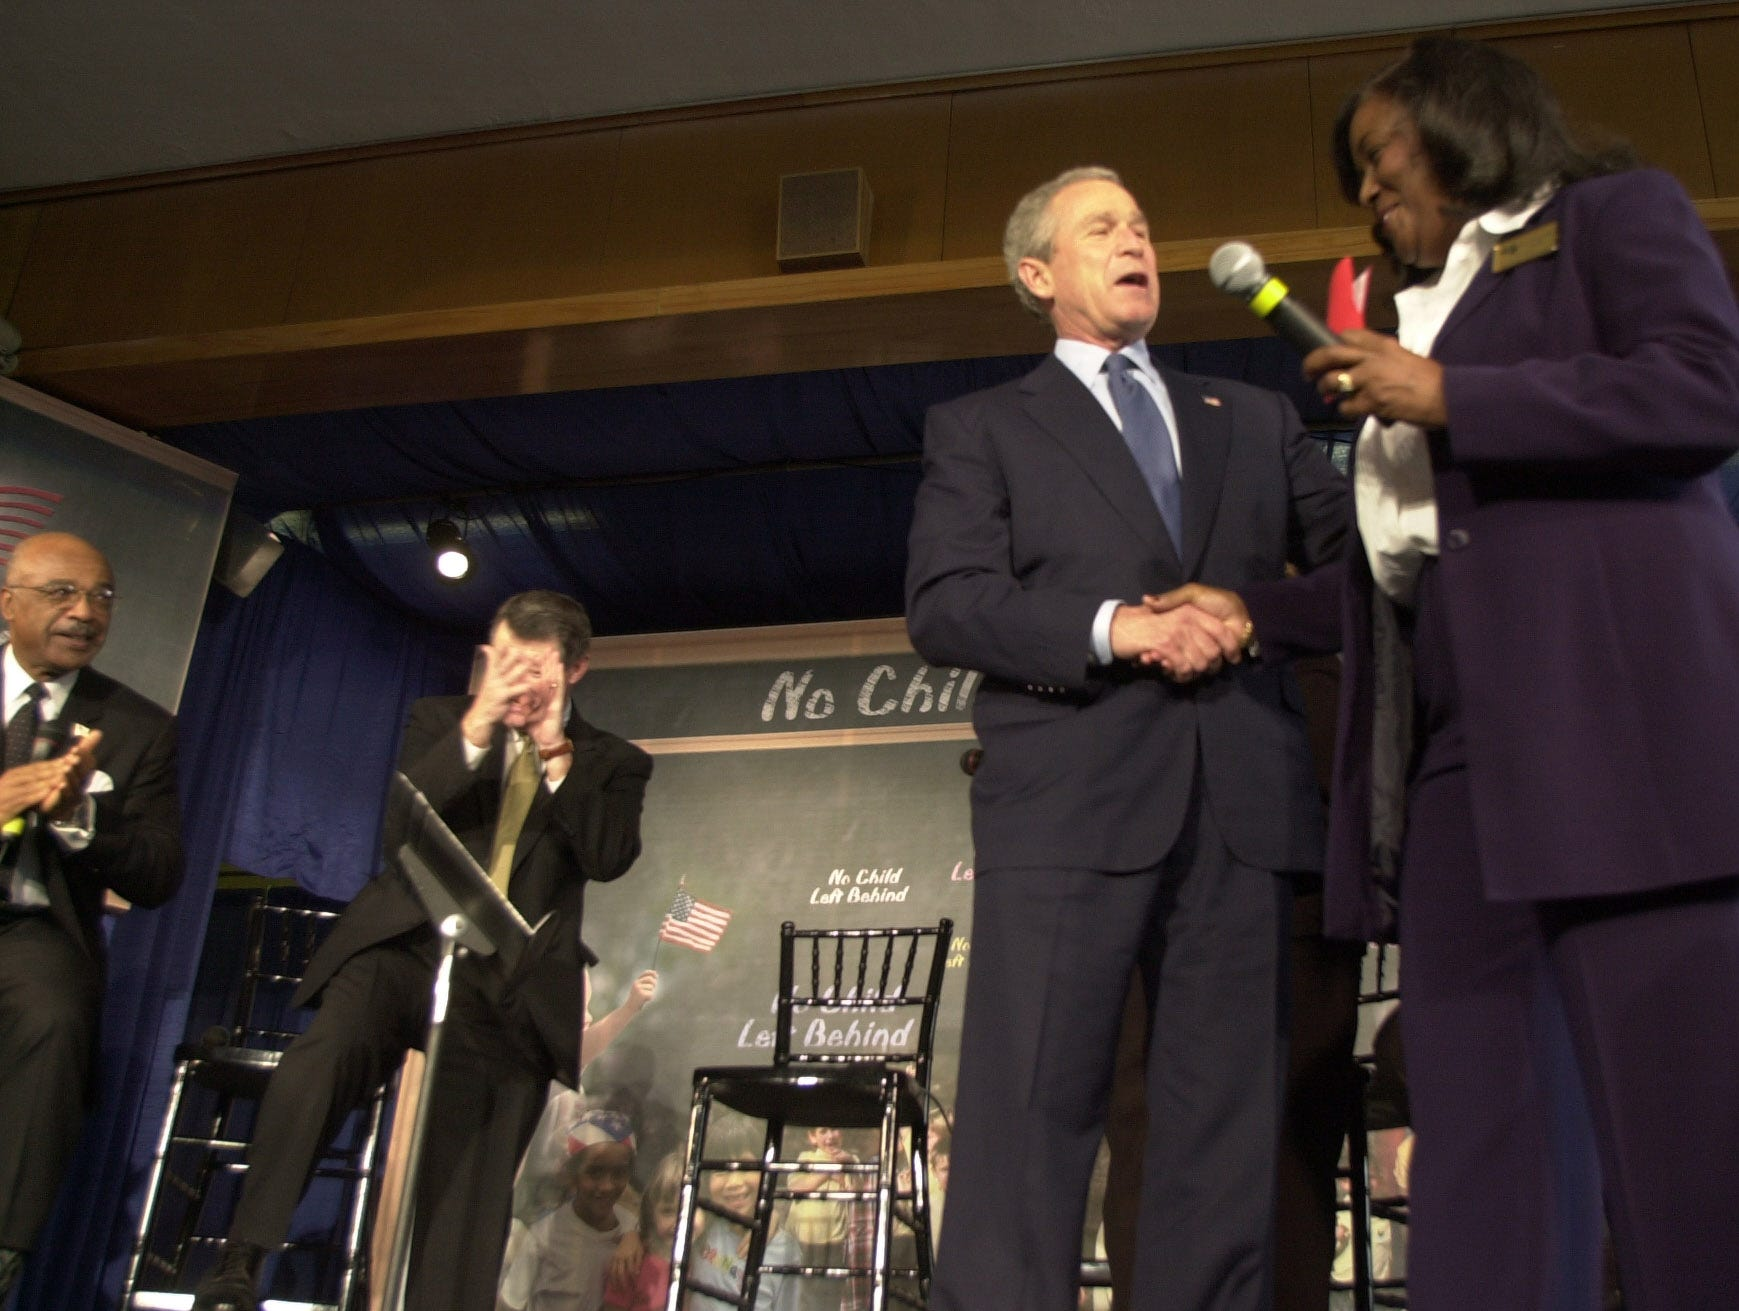 """President George W. Bush is greeted by West View Elementary Principal Melvenia Smith during a visit Thursday, Jan. 8, 2004, to celebrate the second anniversary of the No Child Left Behind Act. """"This school had been measured as a school that hadn't been performing the way you wanted,"""" Bush said. """"Now it is exemplary in math, above standards in reading. You are accomplishing that which we all want, and this is that not one single child be left behind in the state of Tennessee and the city of Knoxville."""""""